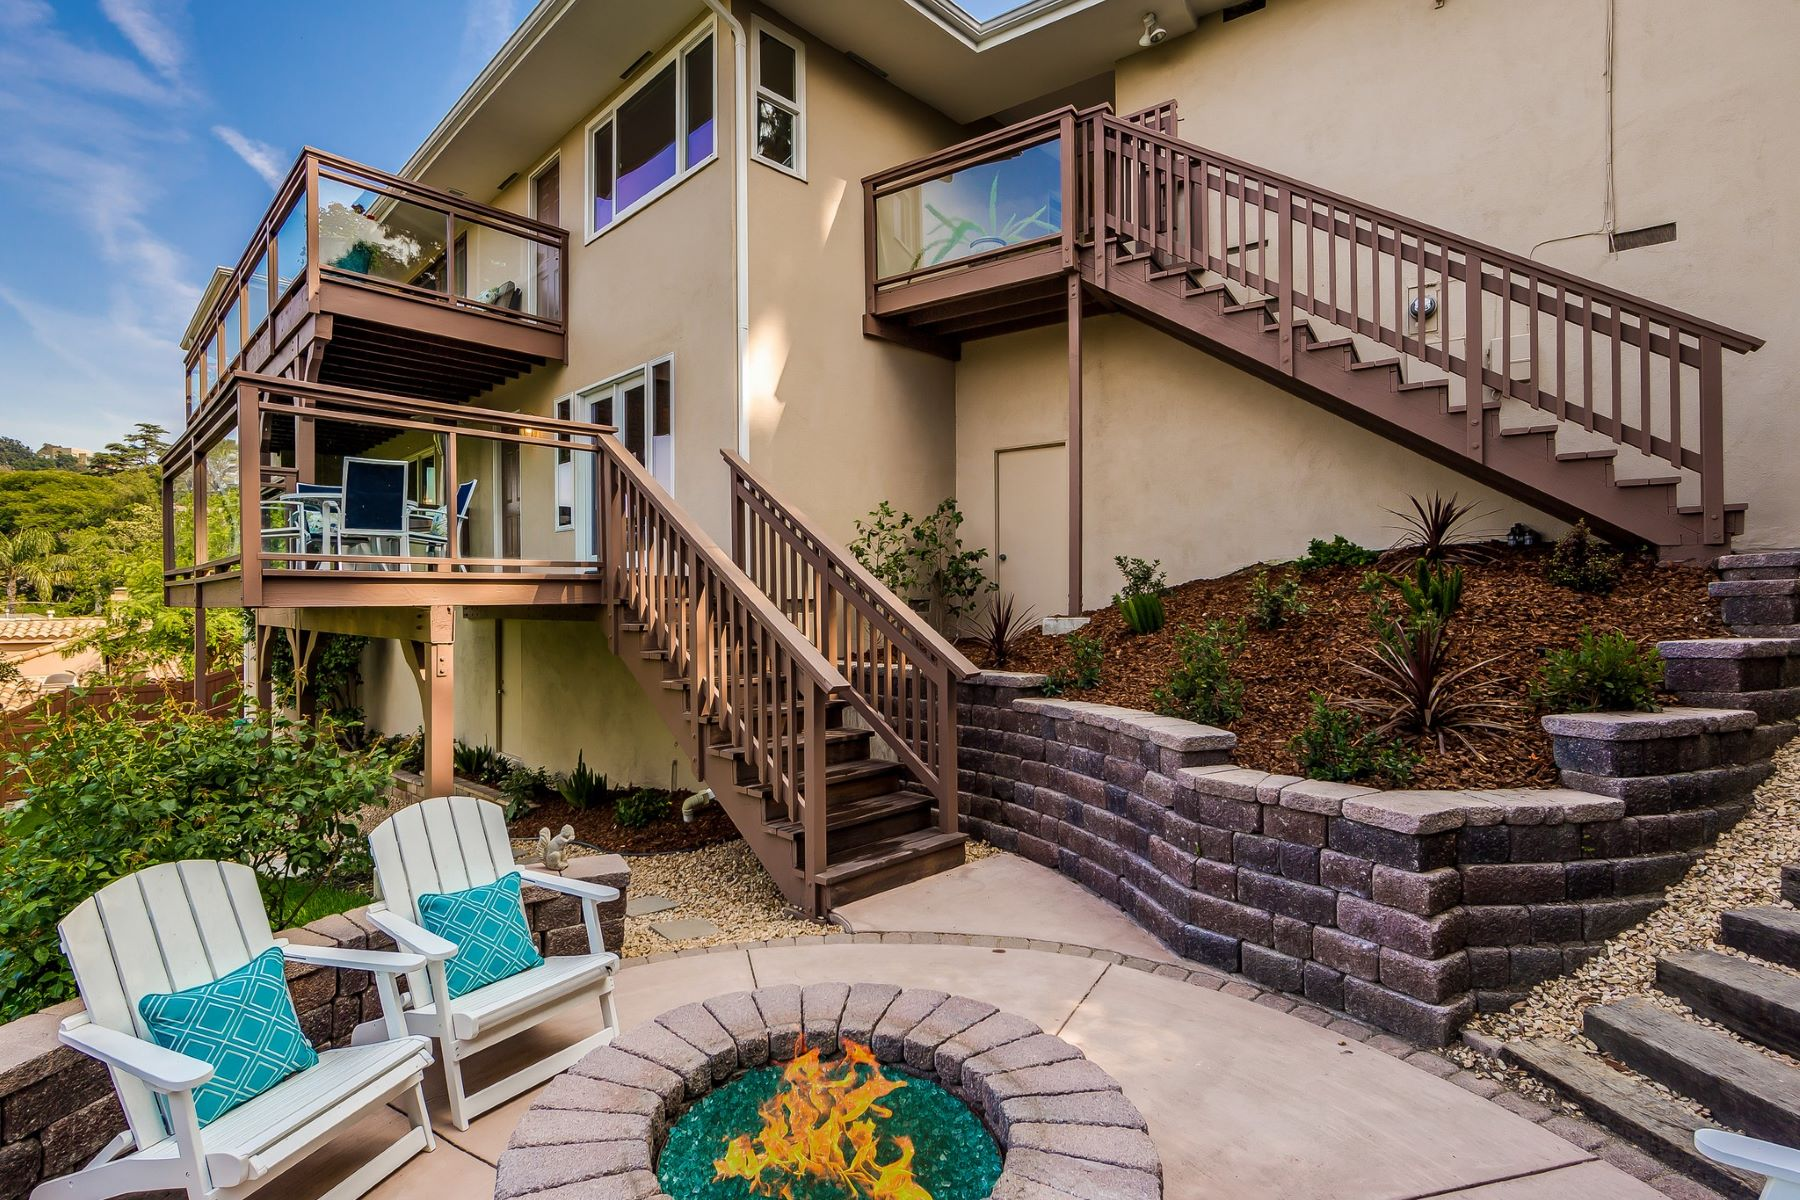 Additional photo for property listing at 13385 Inwood Dr  Sherman Oaks, California 91423 United States